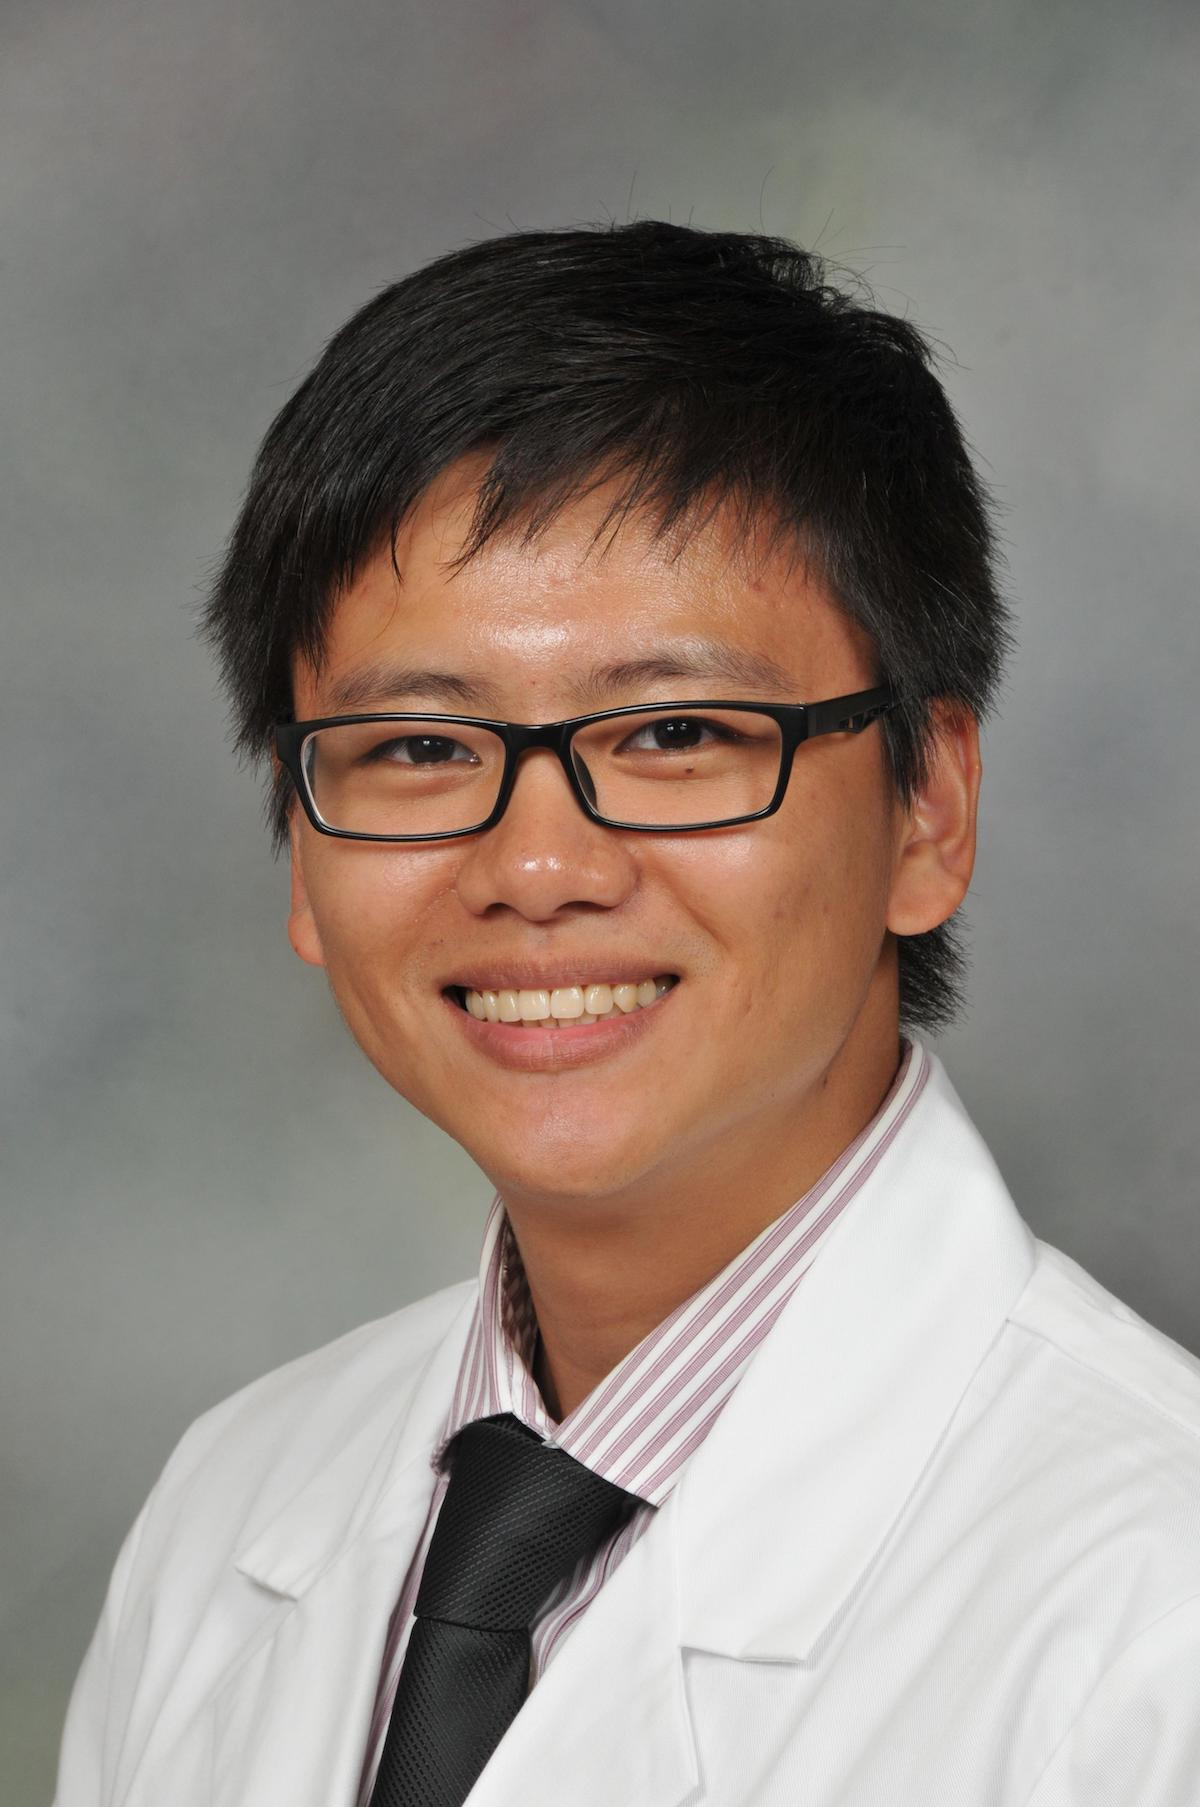 James Chiang, M.D.